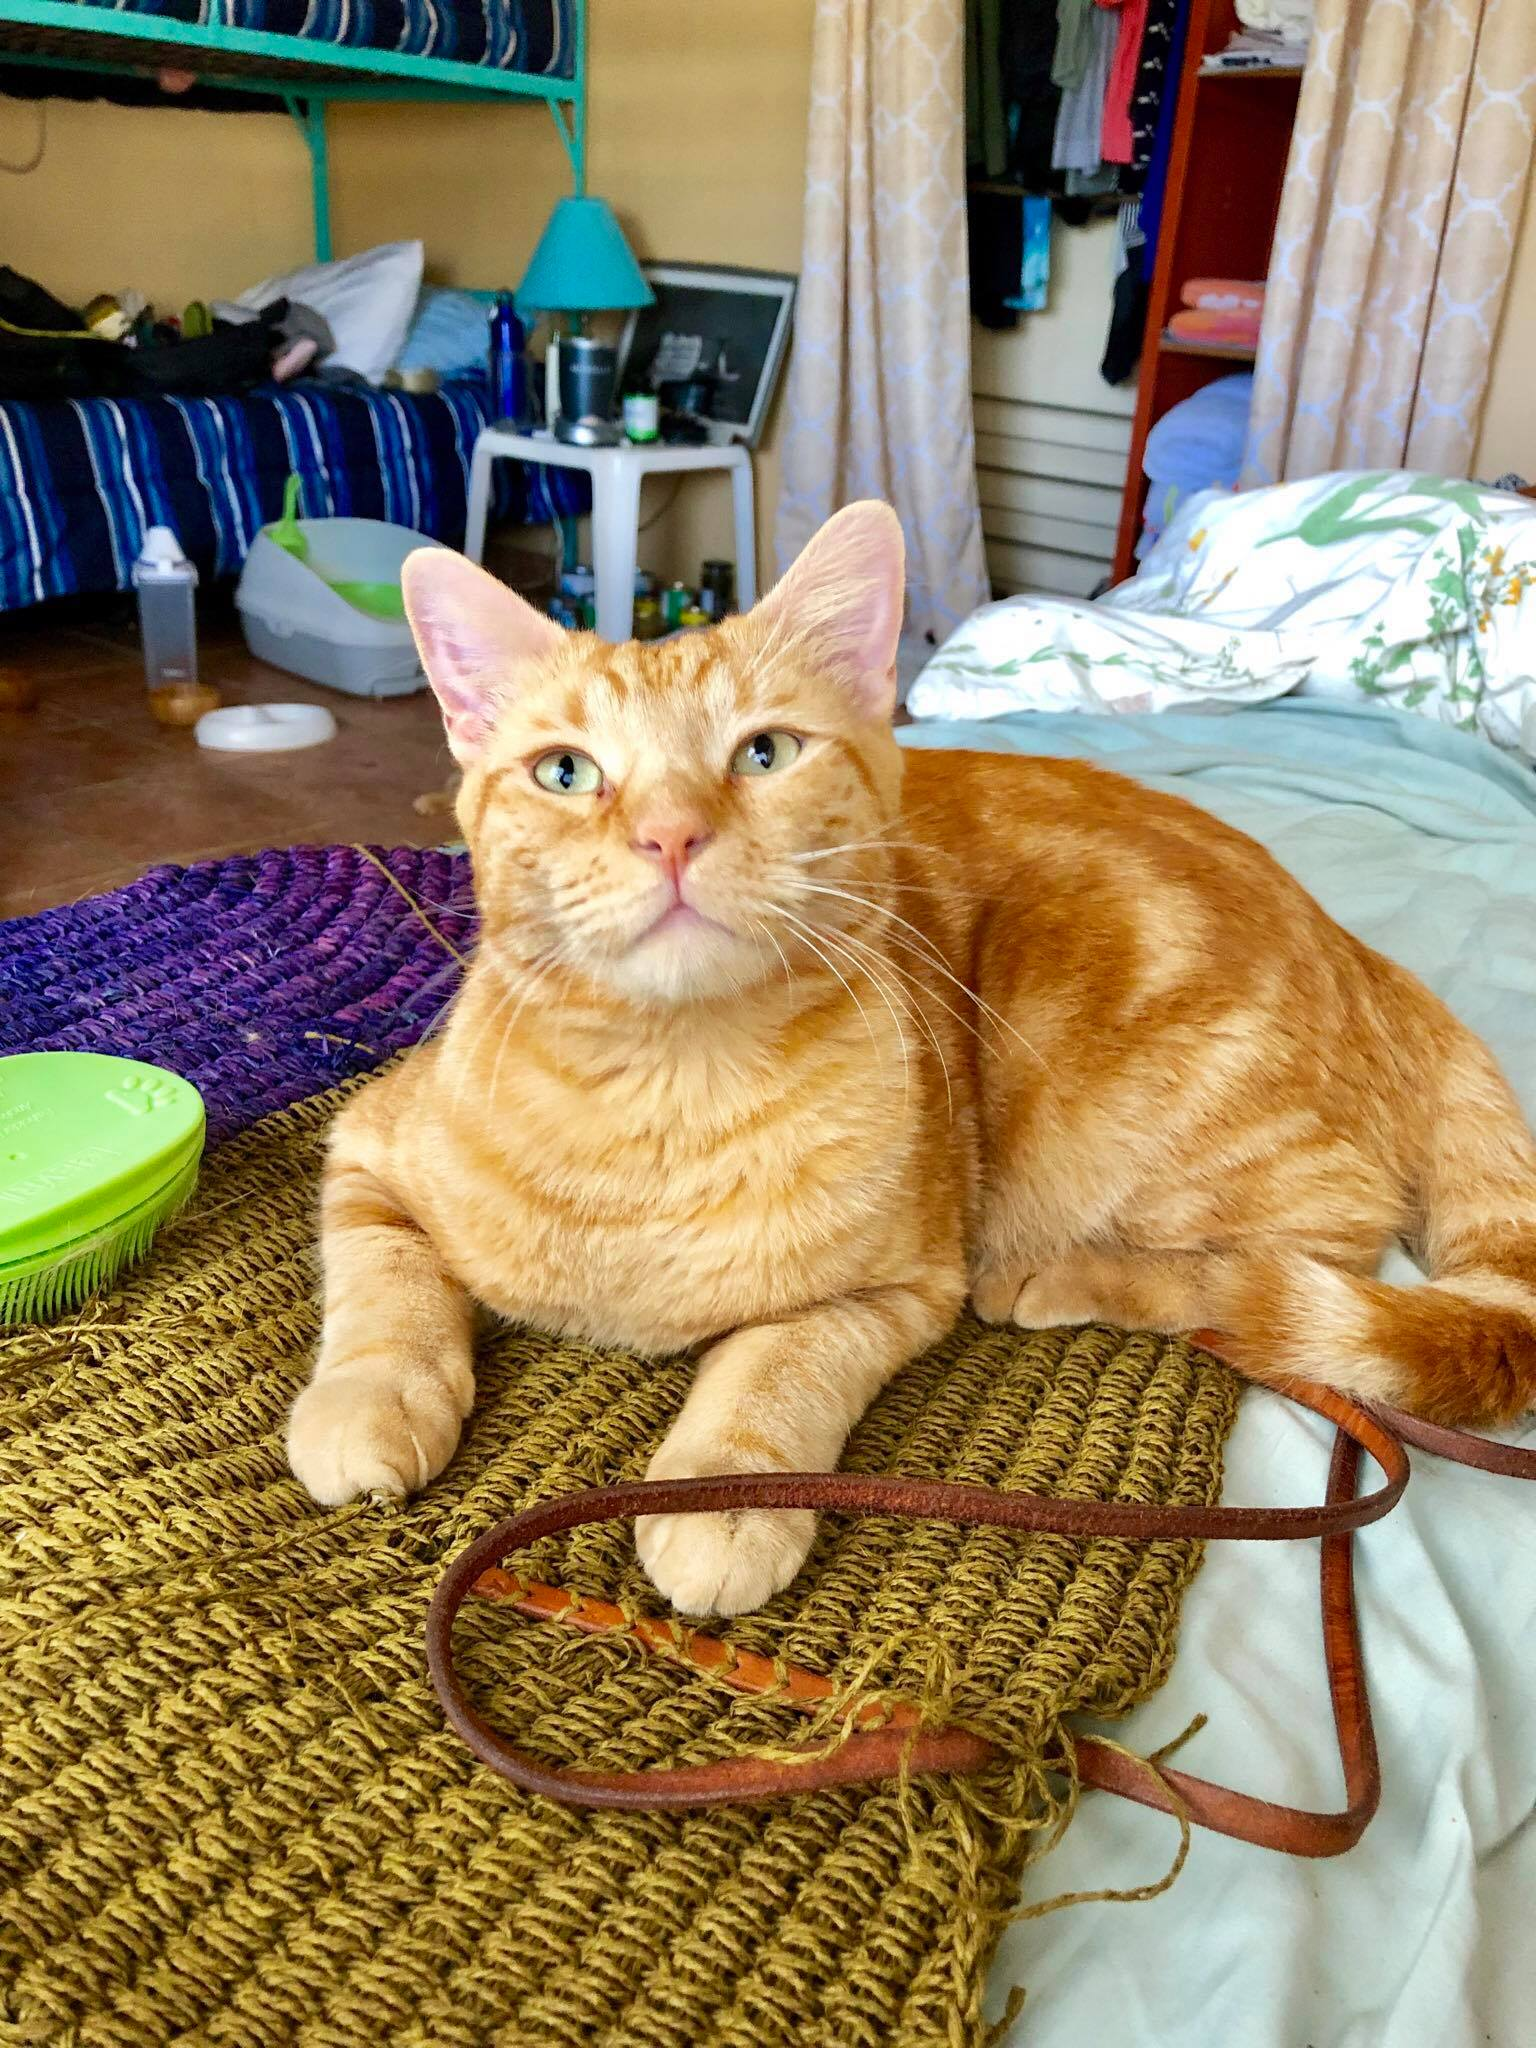 Sailing Life Day 389 I'm back in Puerto Rico with my husband and our kitty cats - Captain Ahab & Little Zissou7.jpg